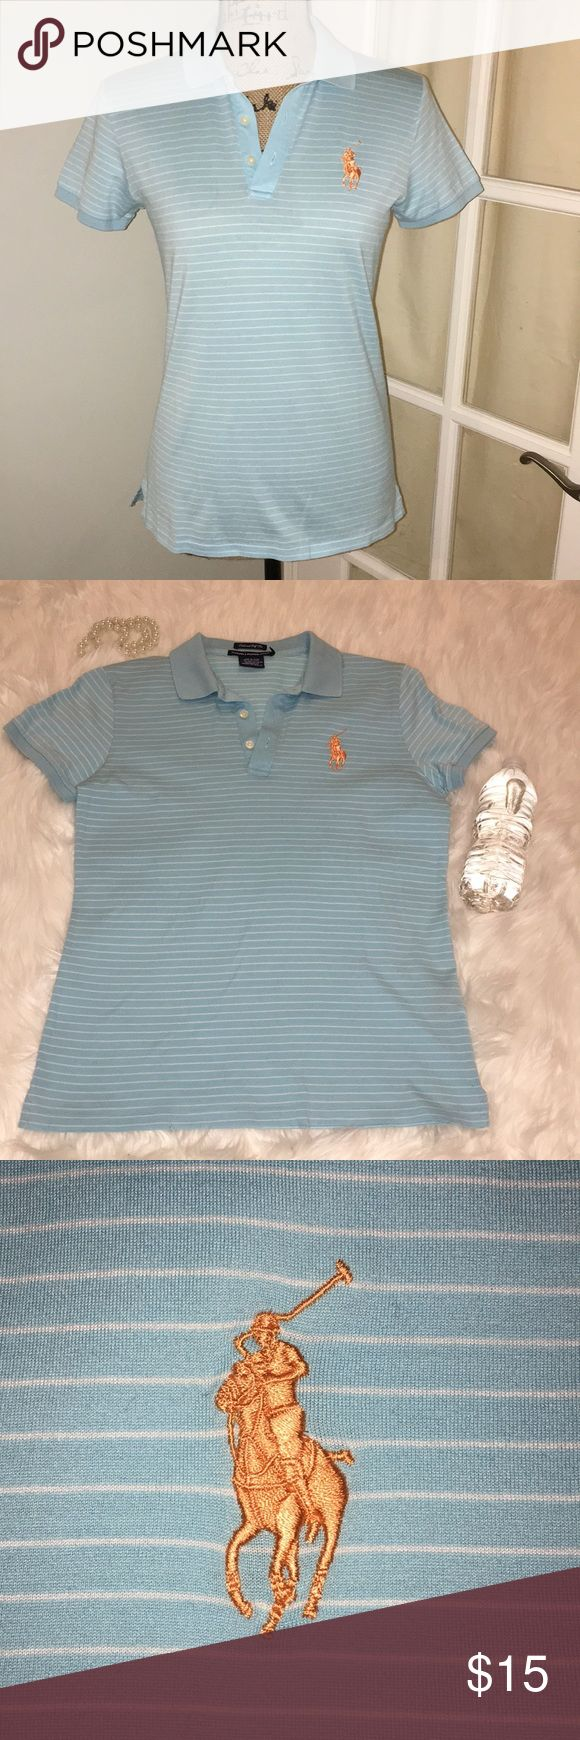 🏌️👕 Ralph Lauren Women's Golf Polo 🏌 👕 🏌️👕Taylored Golf Fit Ralph Lauren Polo 🏌 👕  Pretty Aqua color with white Stripes! Pretty and vibrant orange colored Polo emblem! Size: Small Small hole from security tag when purchased (picture) and small stain on back of Polo (also pictured) Offers welcome! ☺️ Ralph Lauren Tops